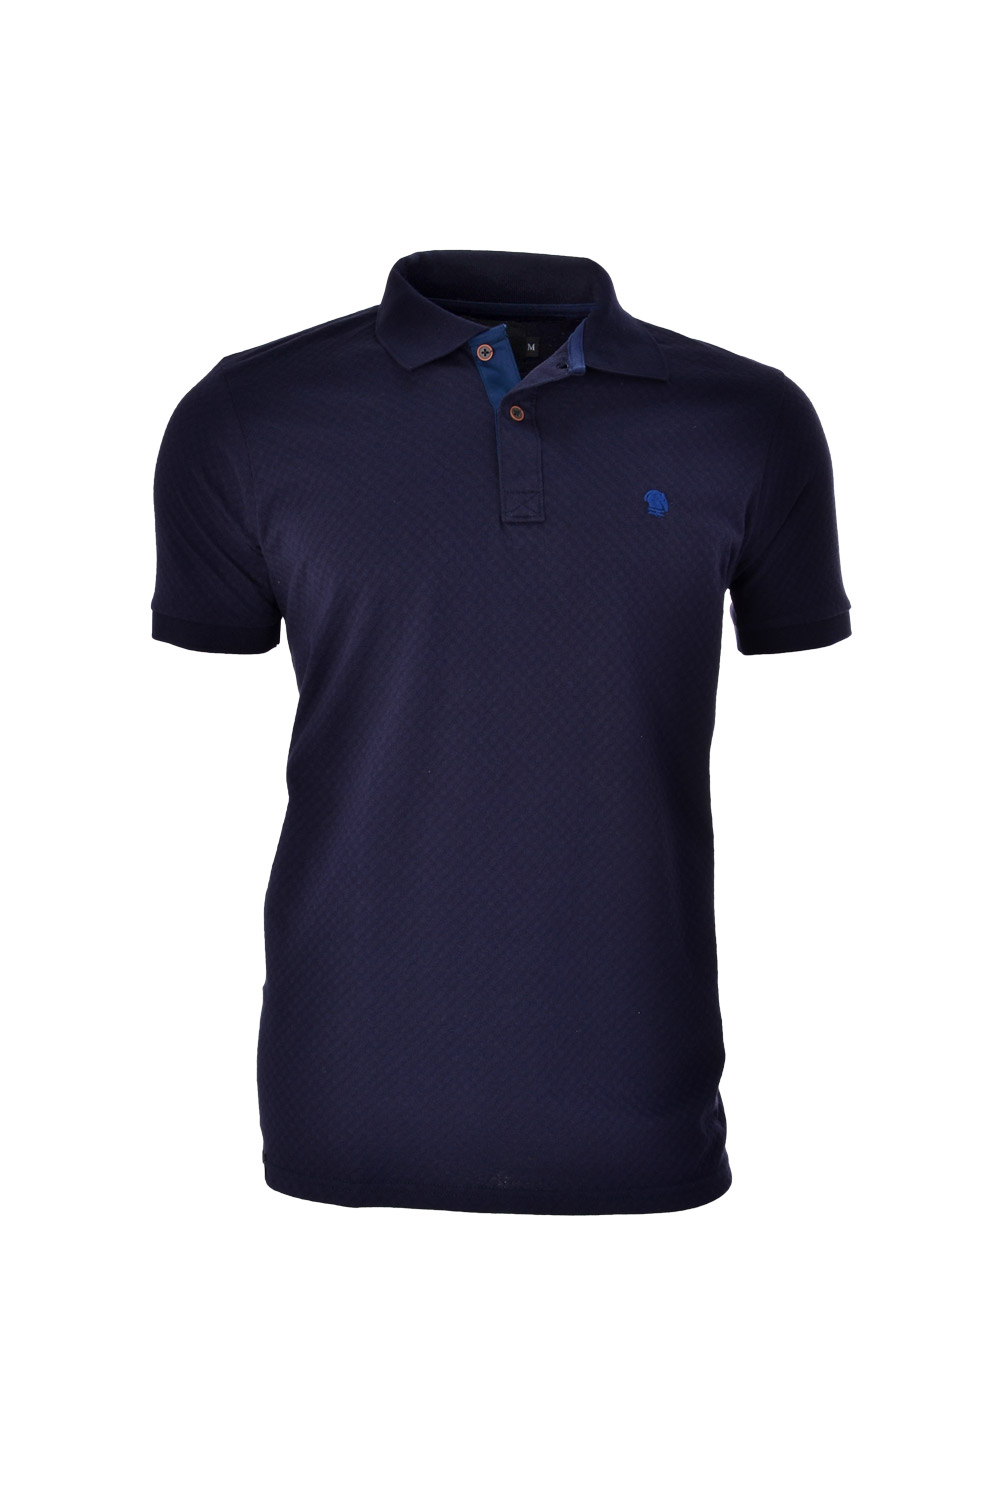 POLO MC BLUES POLIALGODAO FIO TINTO LISO CHEVRON